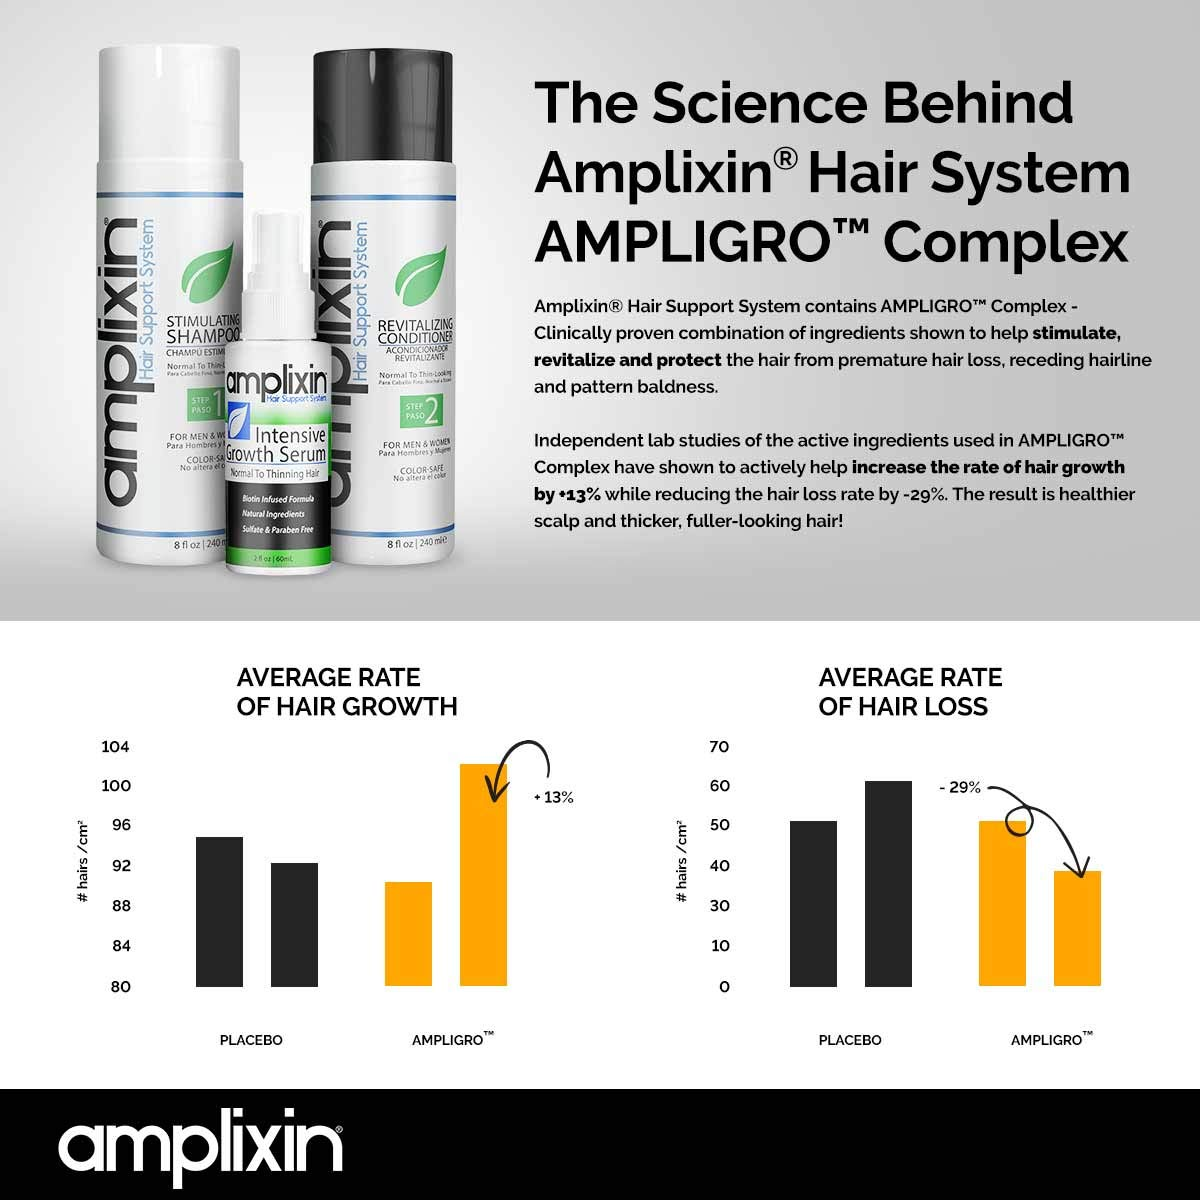 Amplixin Stimulating Shampoo - Healthy Hair Growth & Hair Loss Prevention Treatment For Men & Women With Thinning Hair - Sulfate-Free Dht Blocking Formula, 8Oz by Amplixin